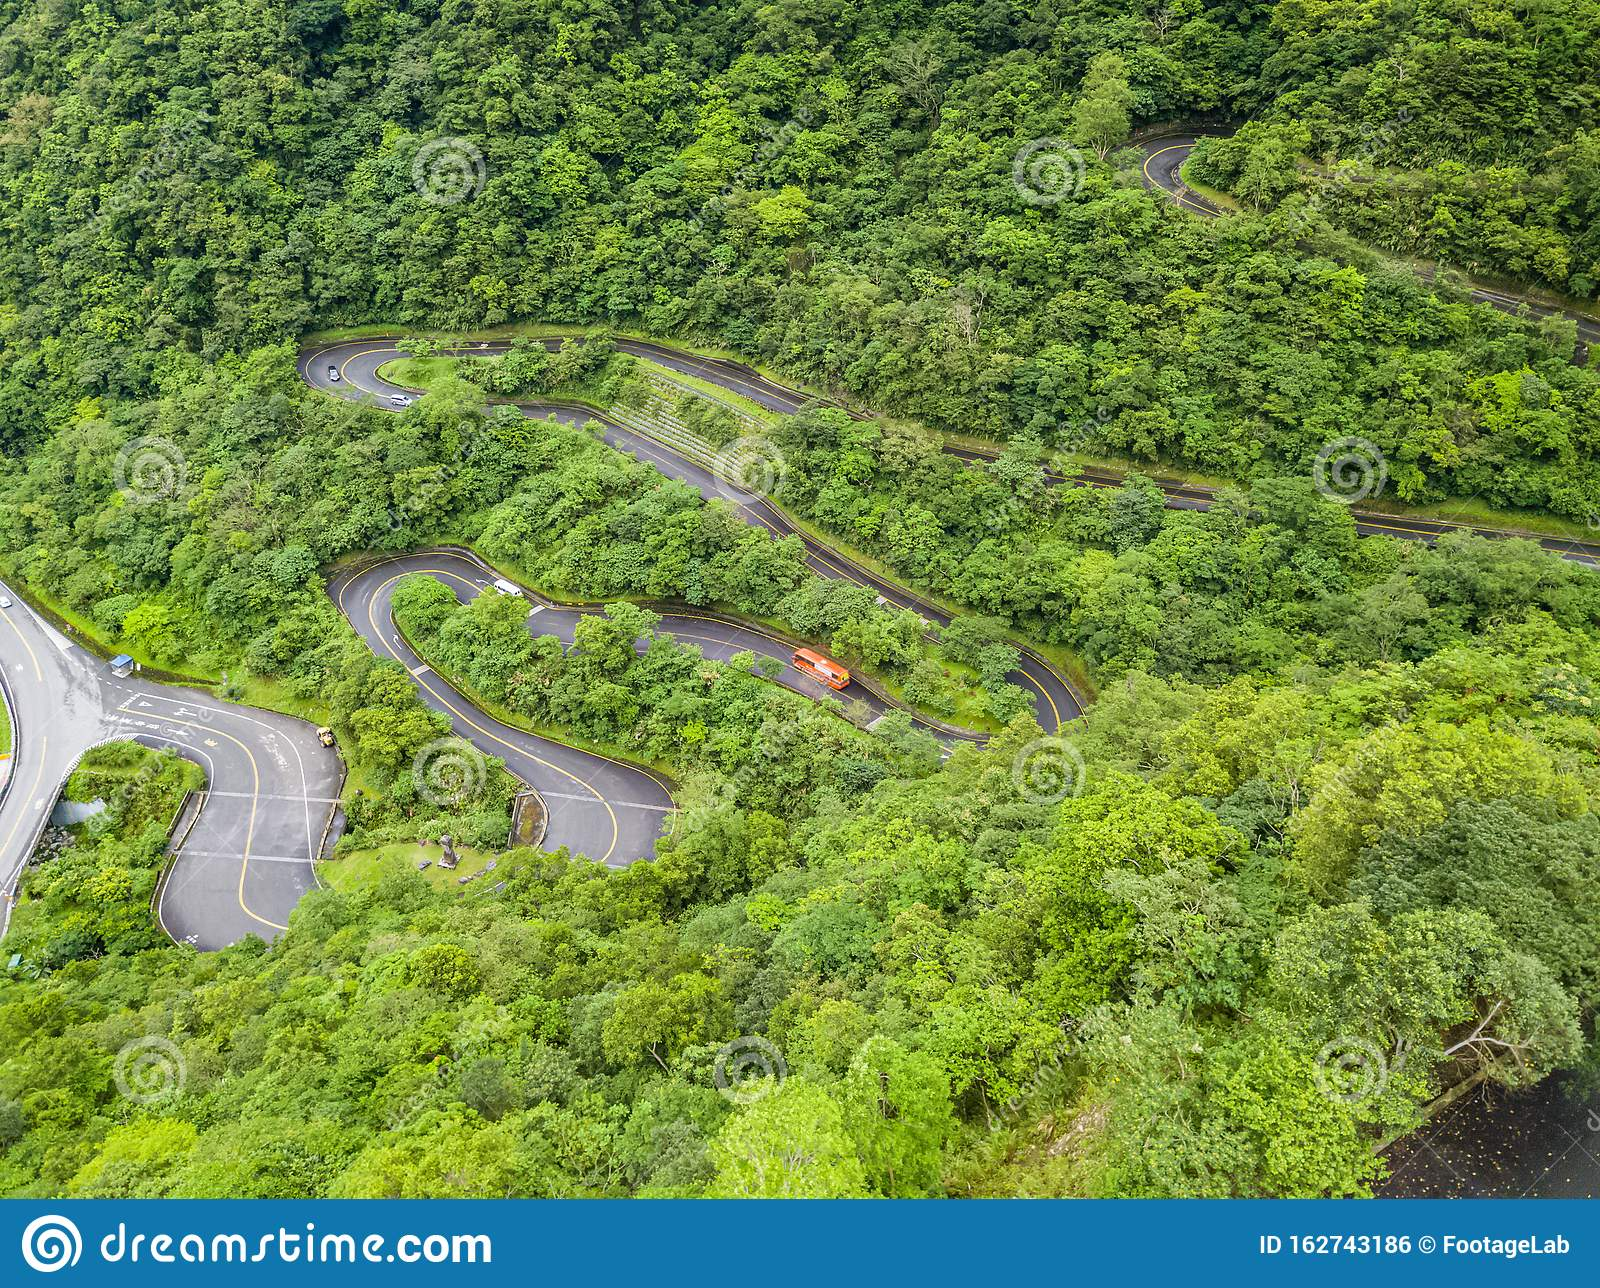 Vehicles Moving Along Curved Serpentinous Road Among Green Lush Forest Trees In Taroko Gorge National Park In Taiwan Stock Photo - Image of ...